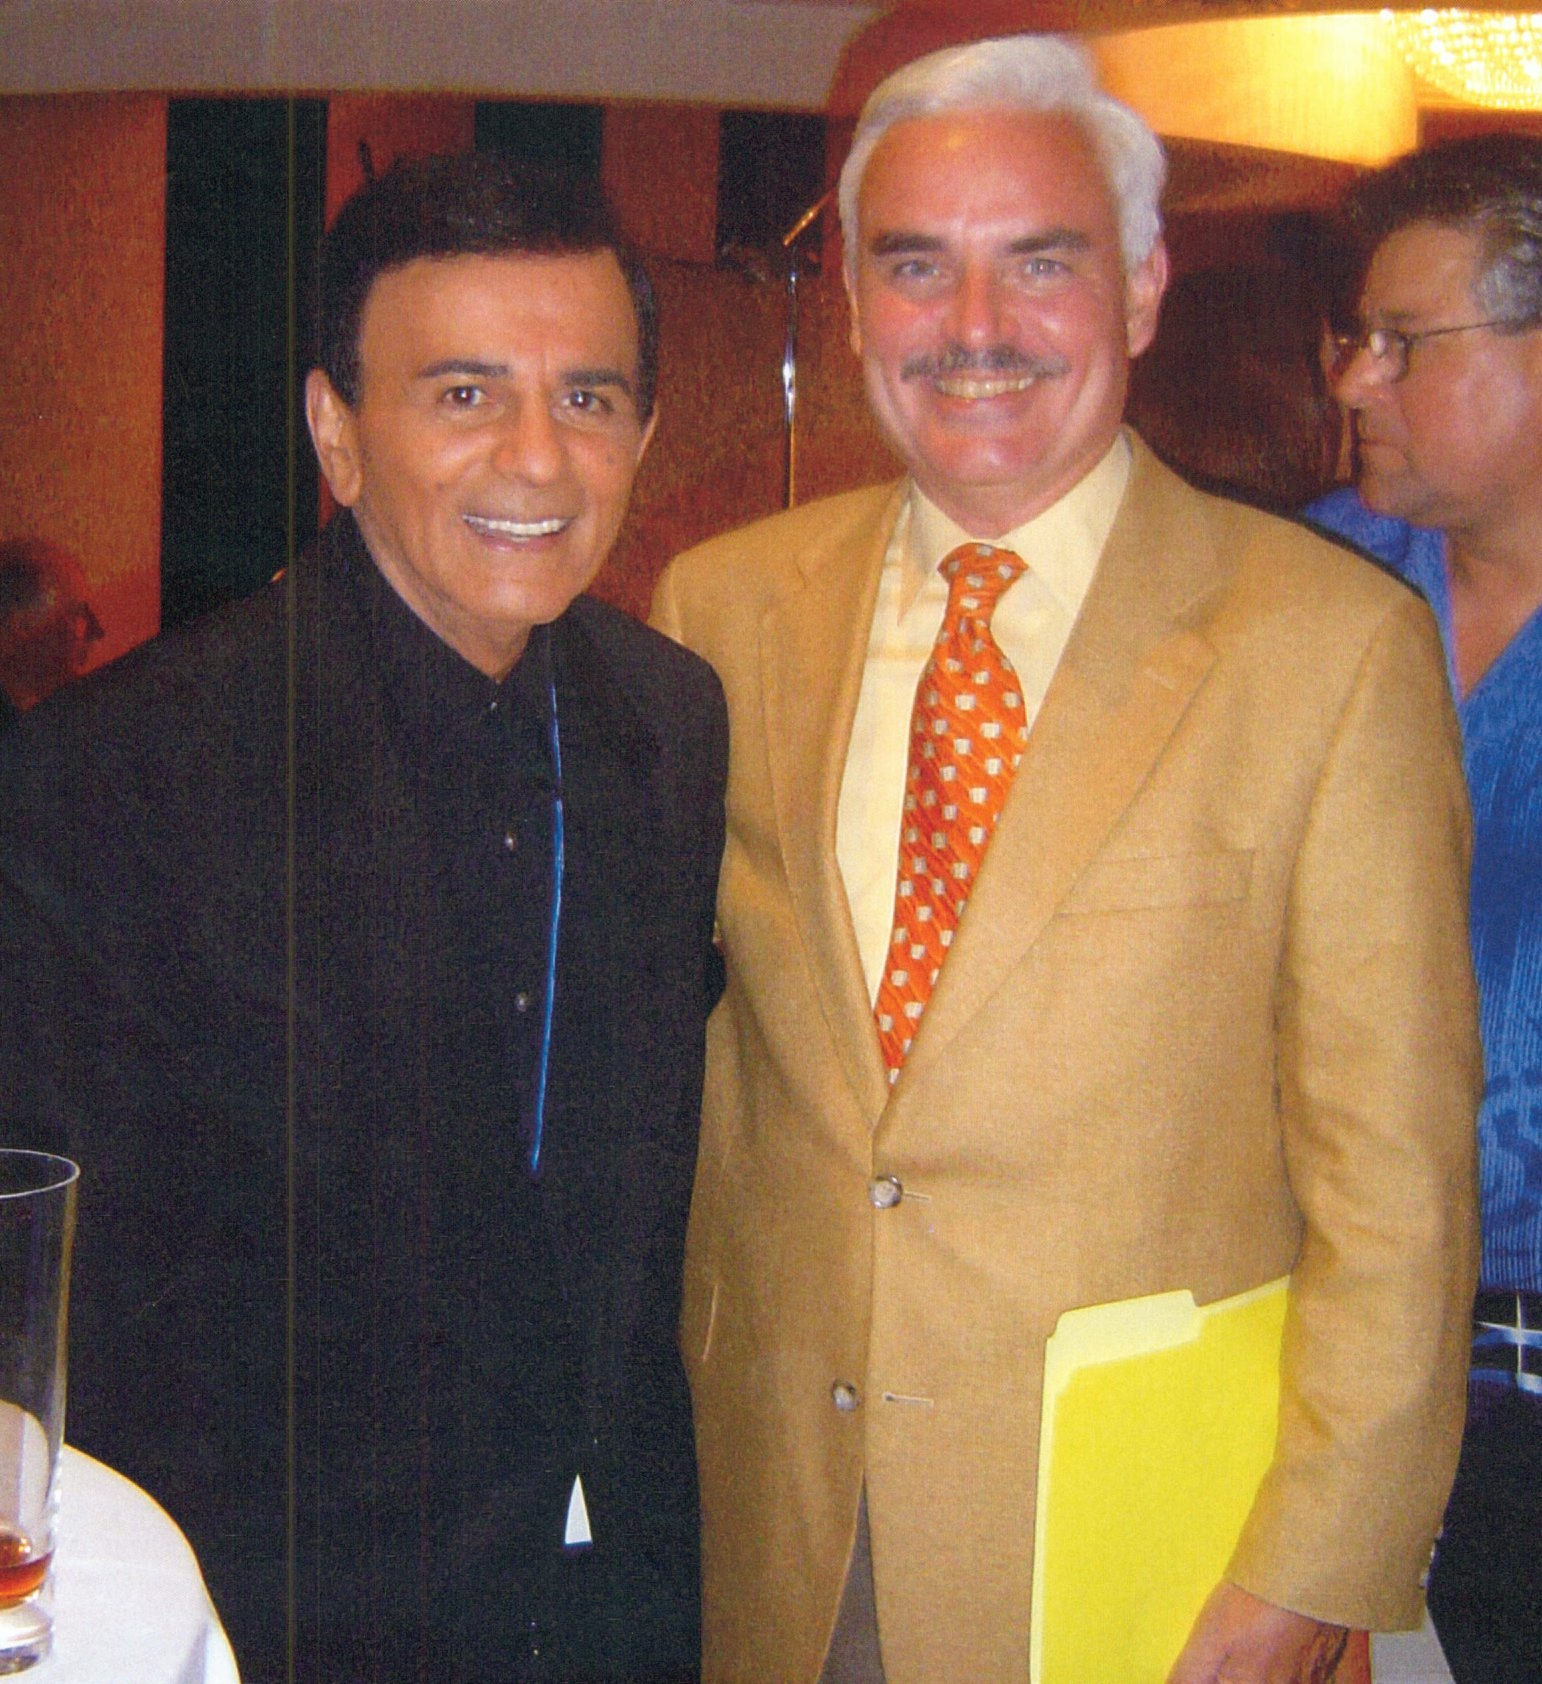 Mike Igoe and Casey Kasem at Muscular Dystrophy Telethon conference in Los Angeles in 2005.